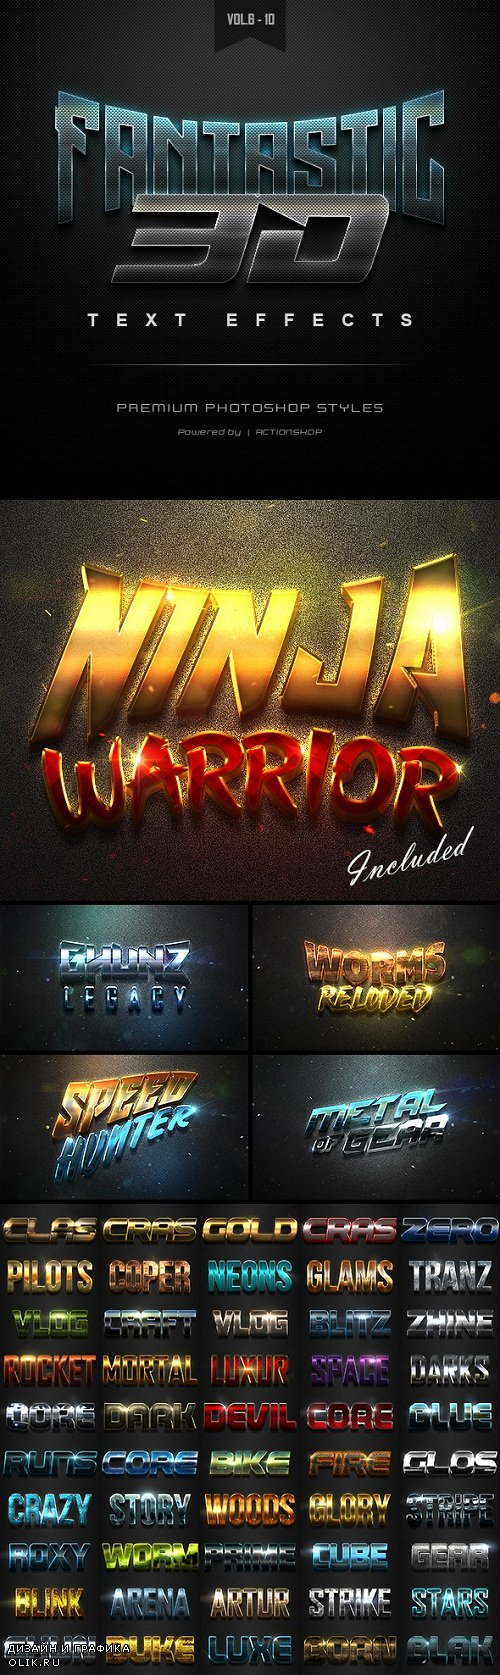 3D Text Effects Bundle Two - 22589005